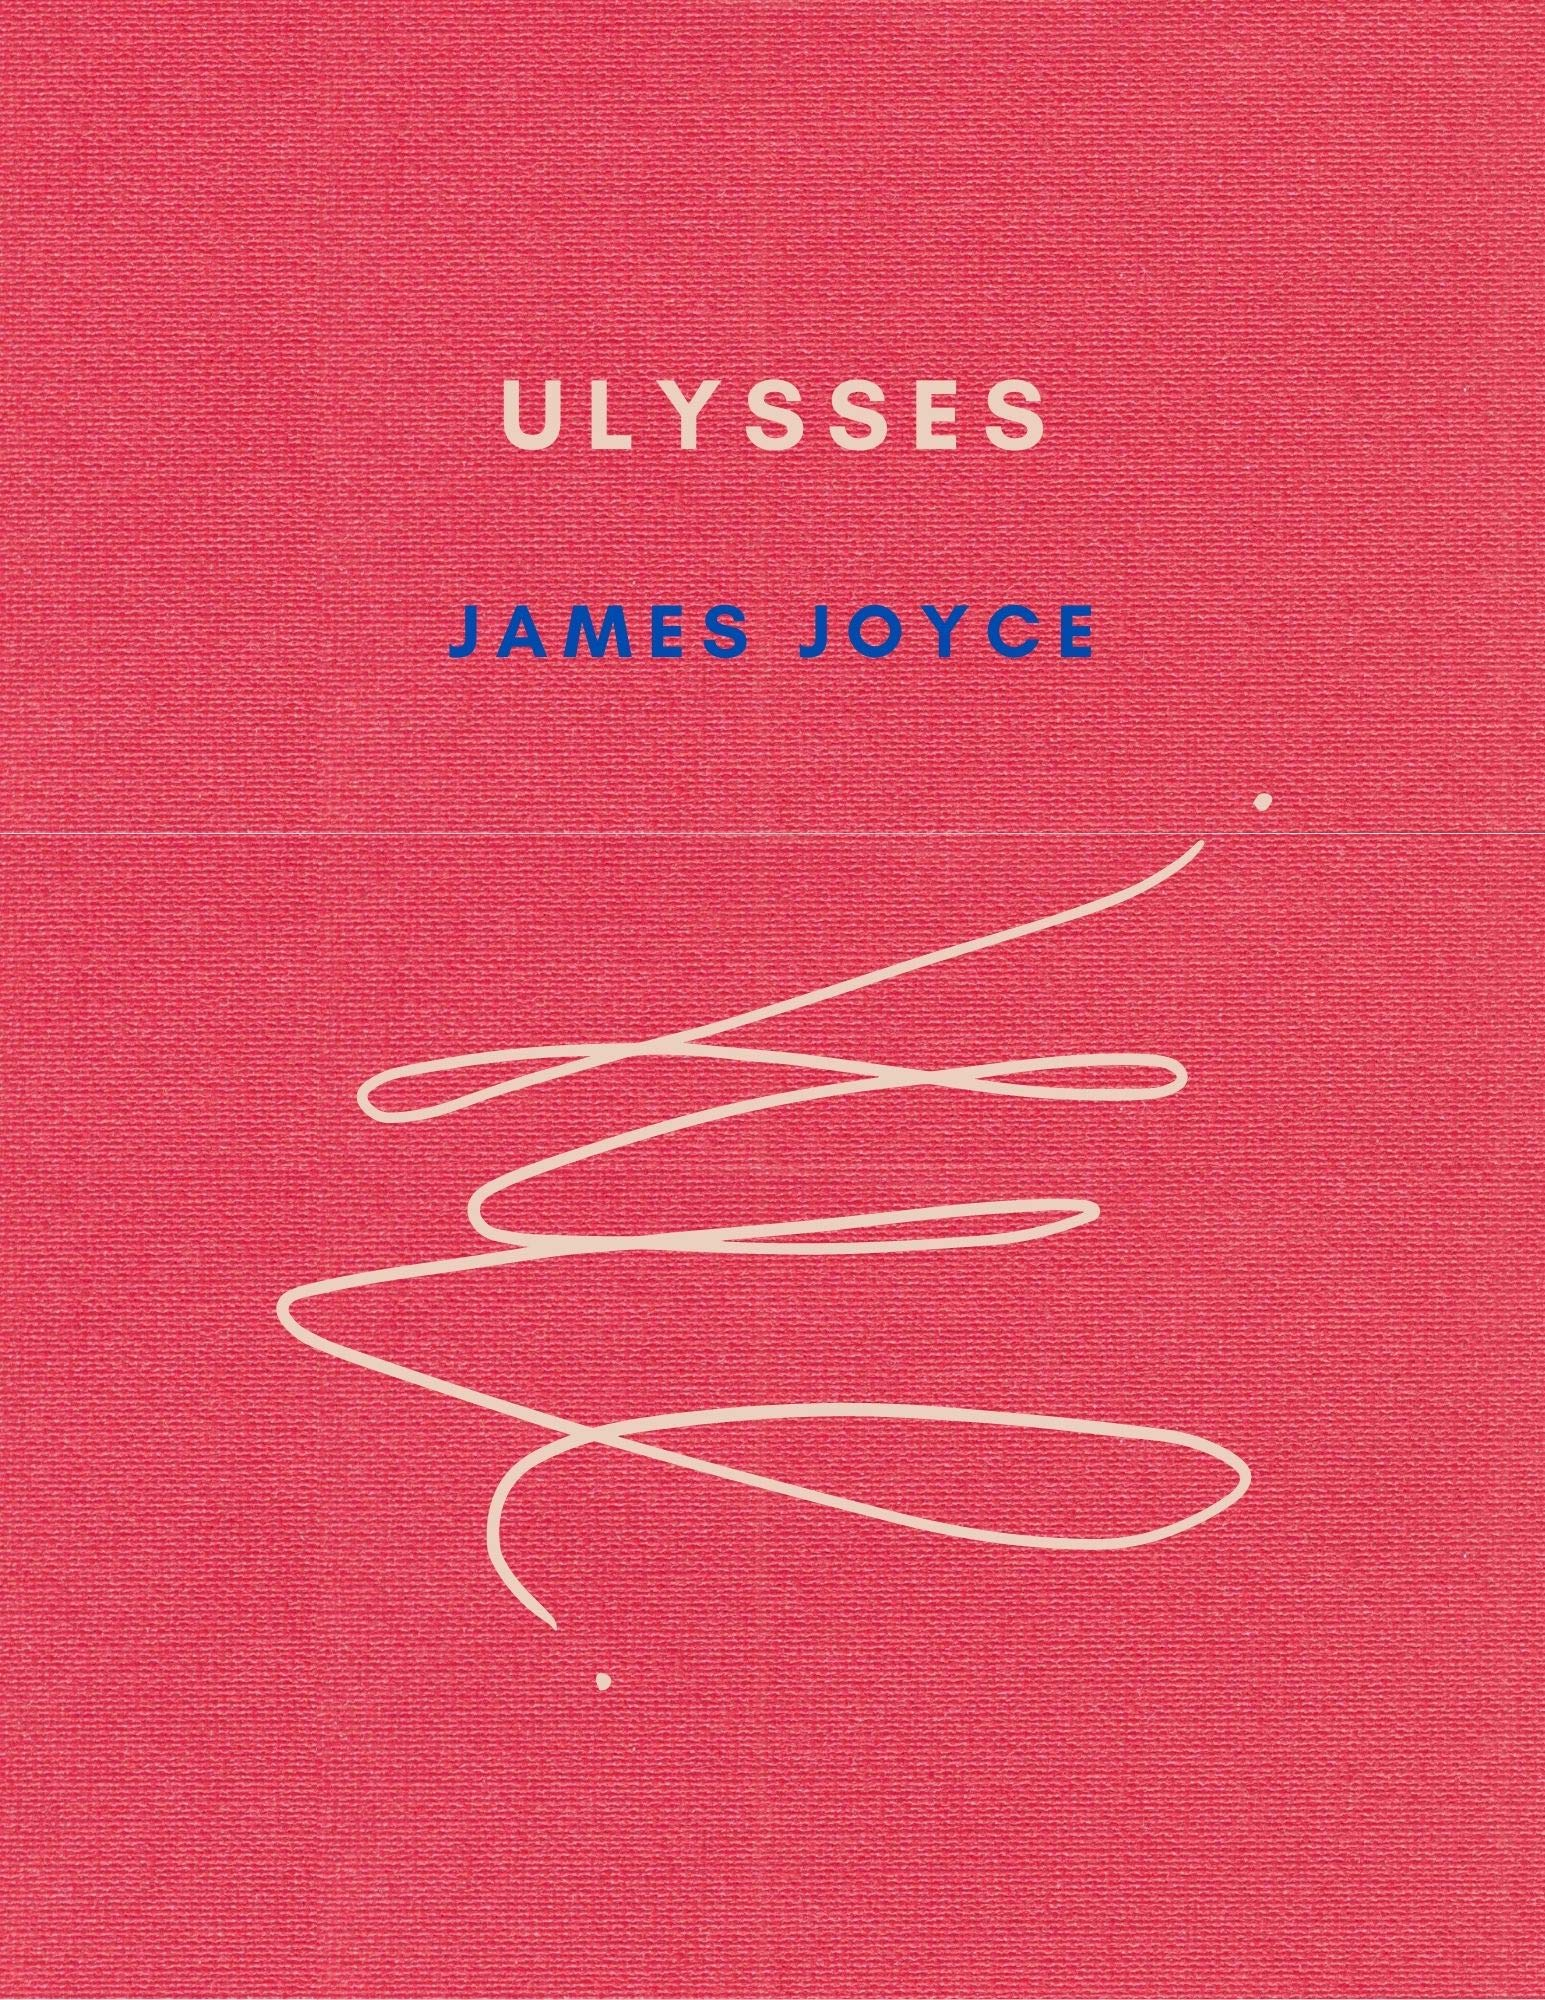 Ulysses by James Joyce (Unabridged: Yes / Annotated: No)